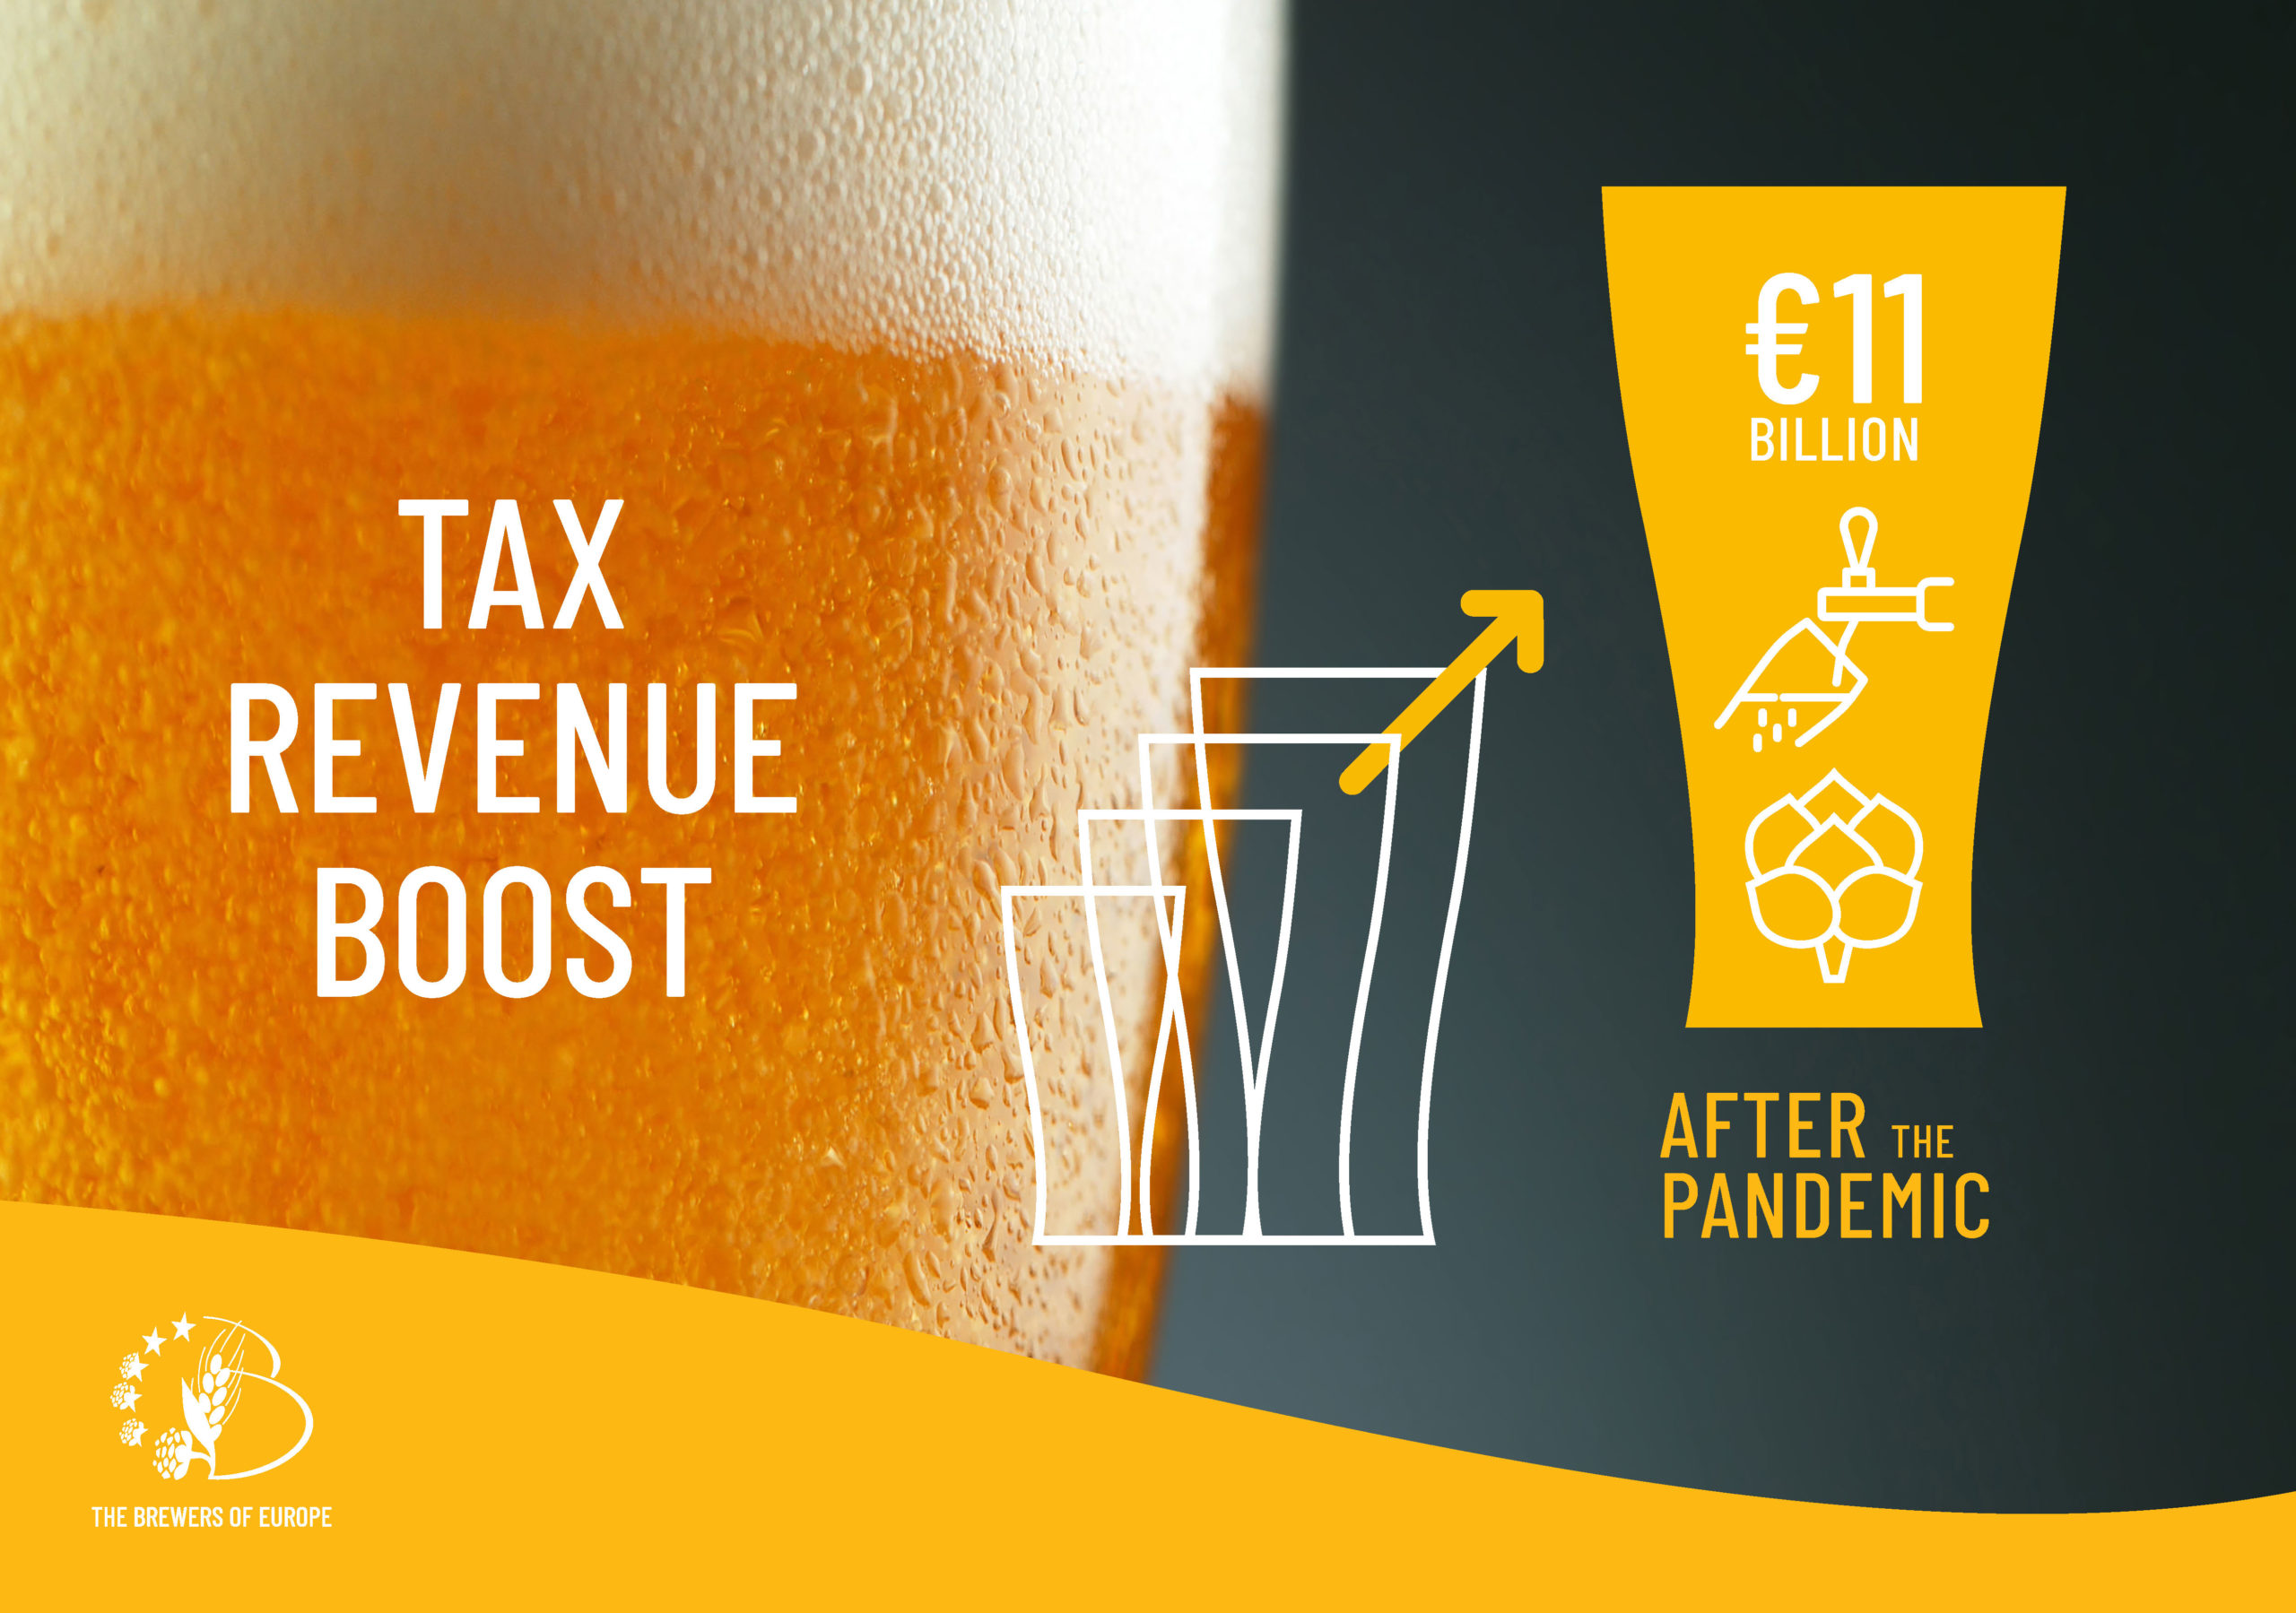 €11 billion in extra government tax revenues can be collected to help kick-start the economy if beer hospitality can get back to pre-Covid levels